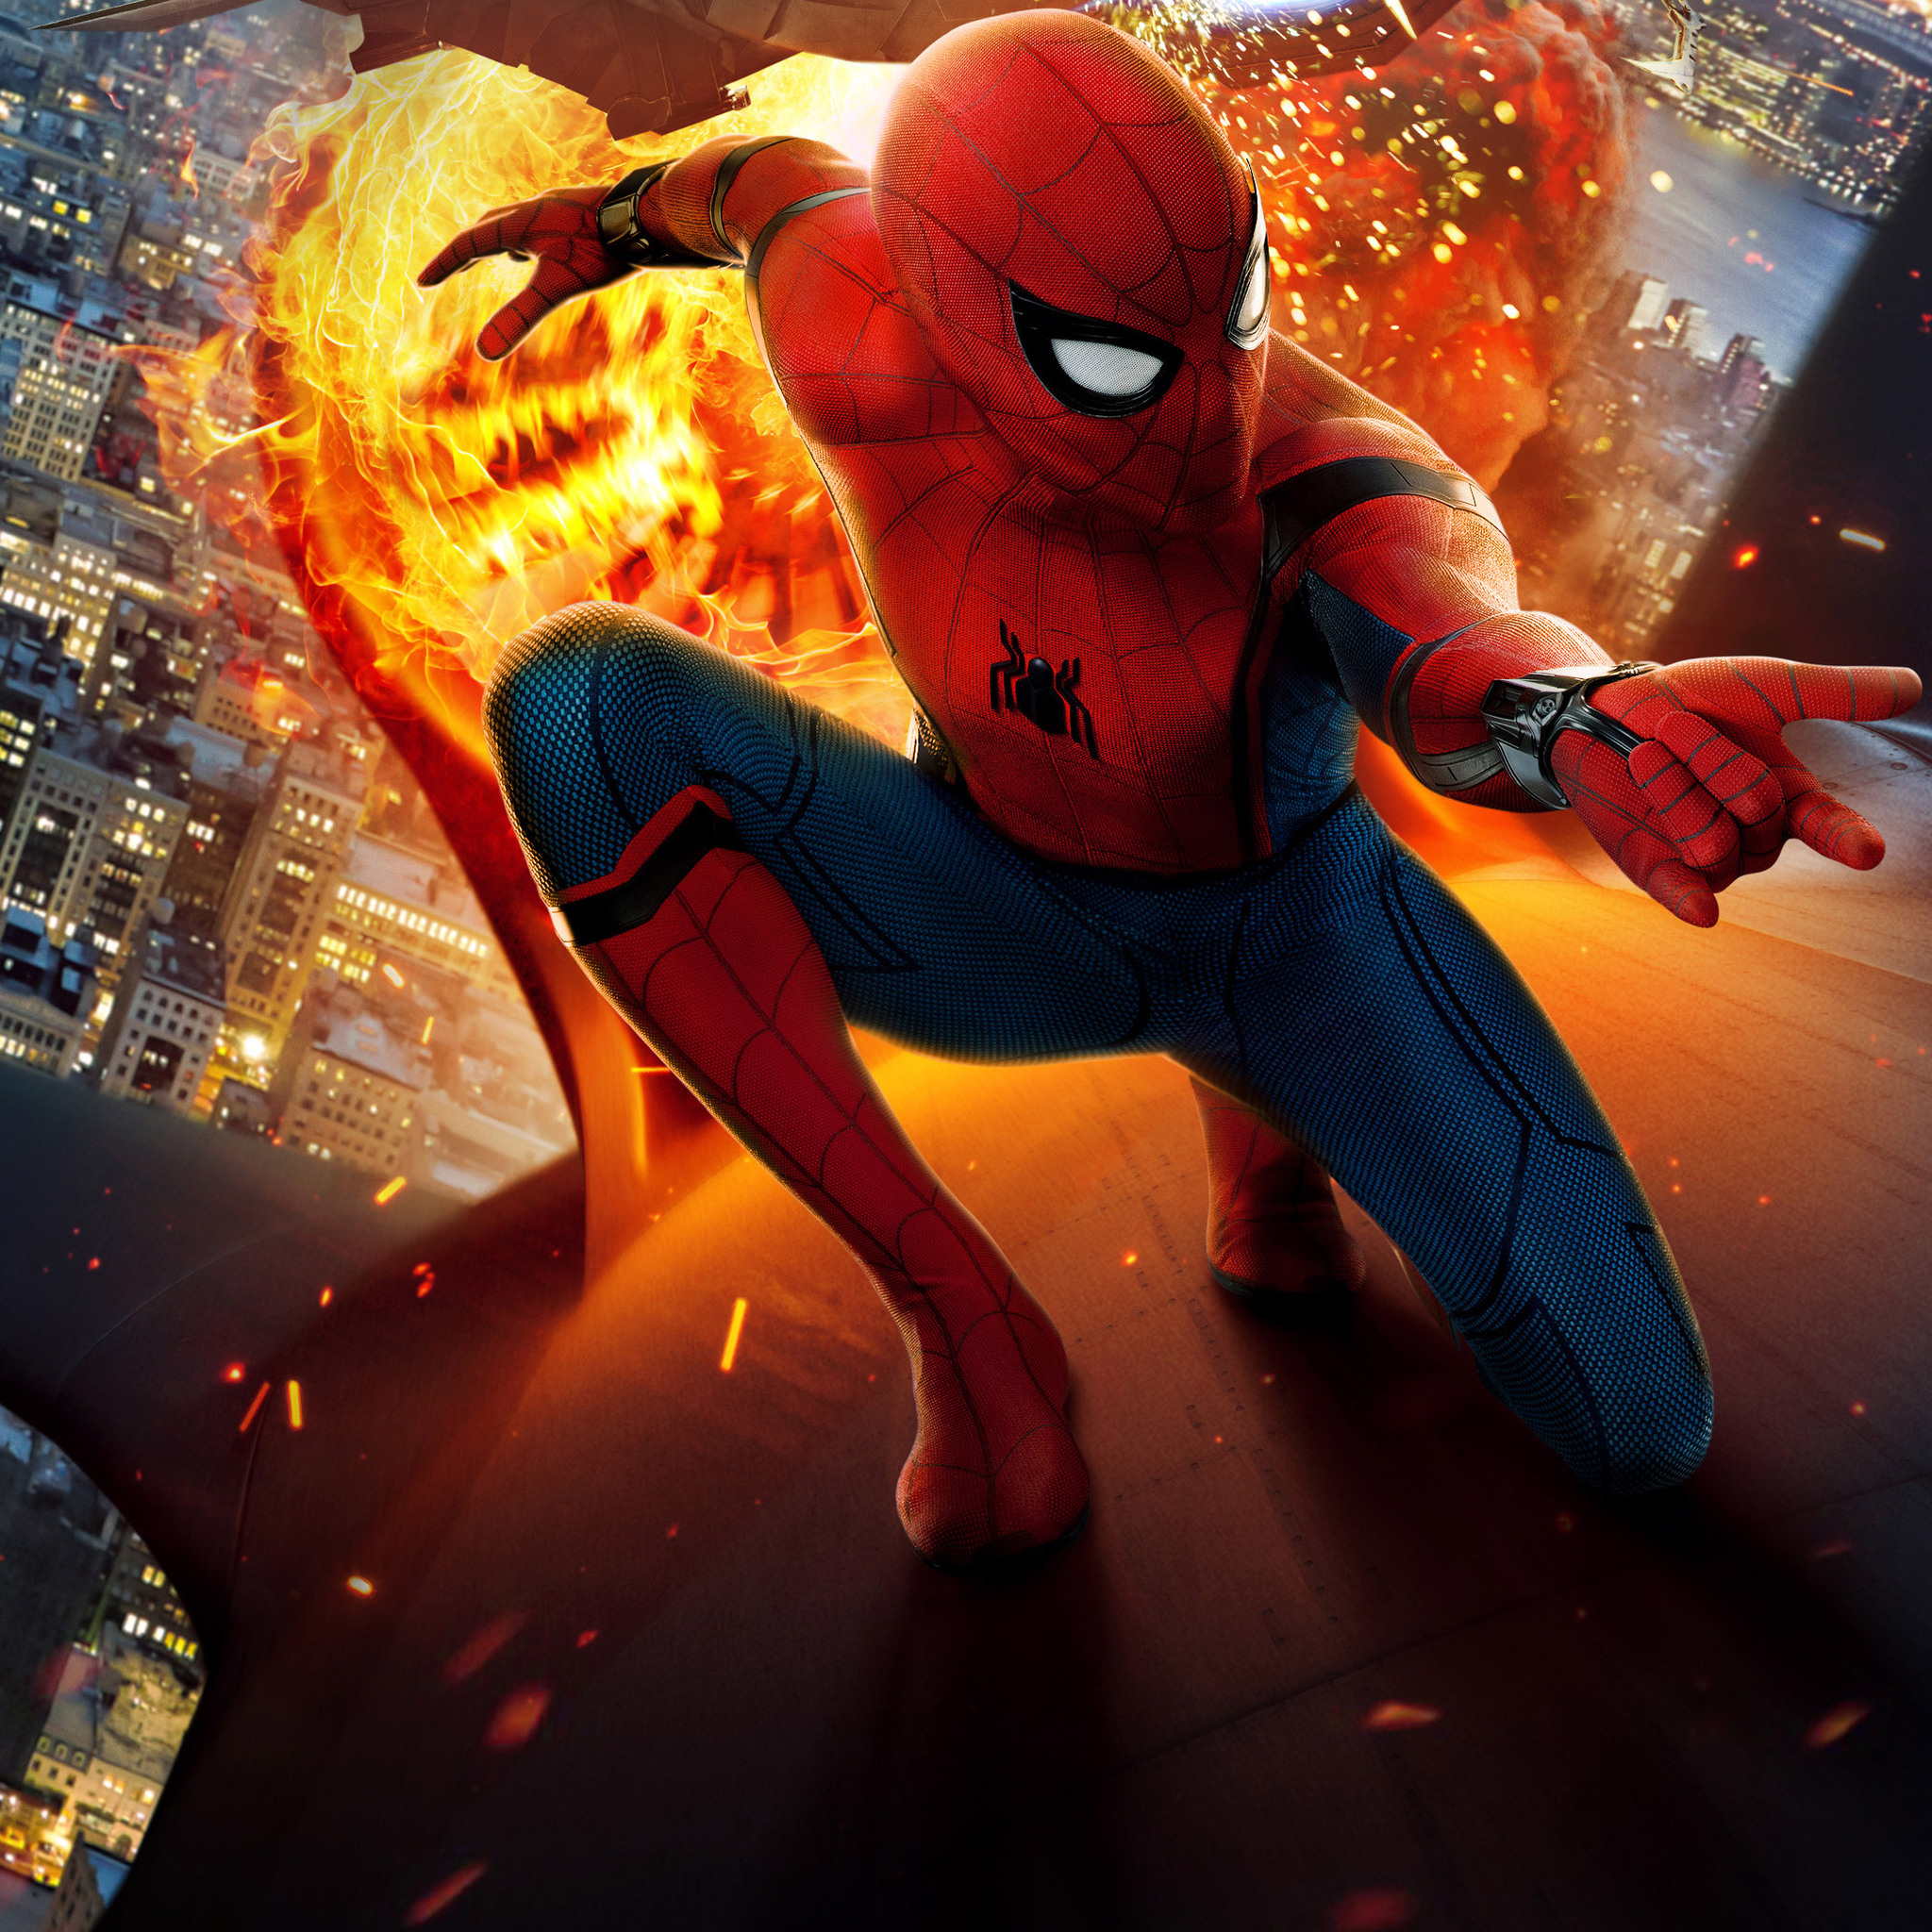 2048x2048 spiderman homecoming new movie poster chinese - New spiderman movie wallpaper ...